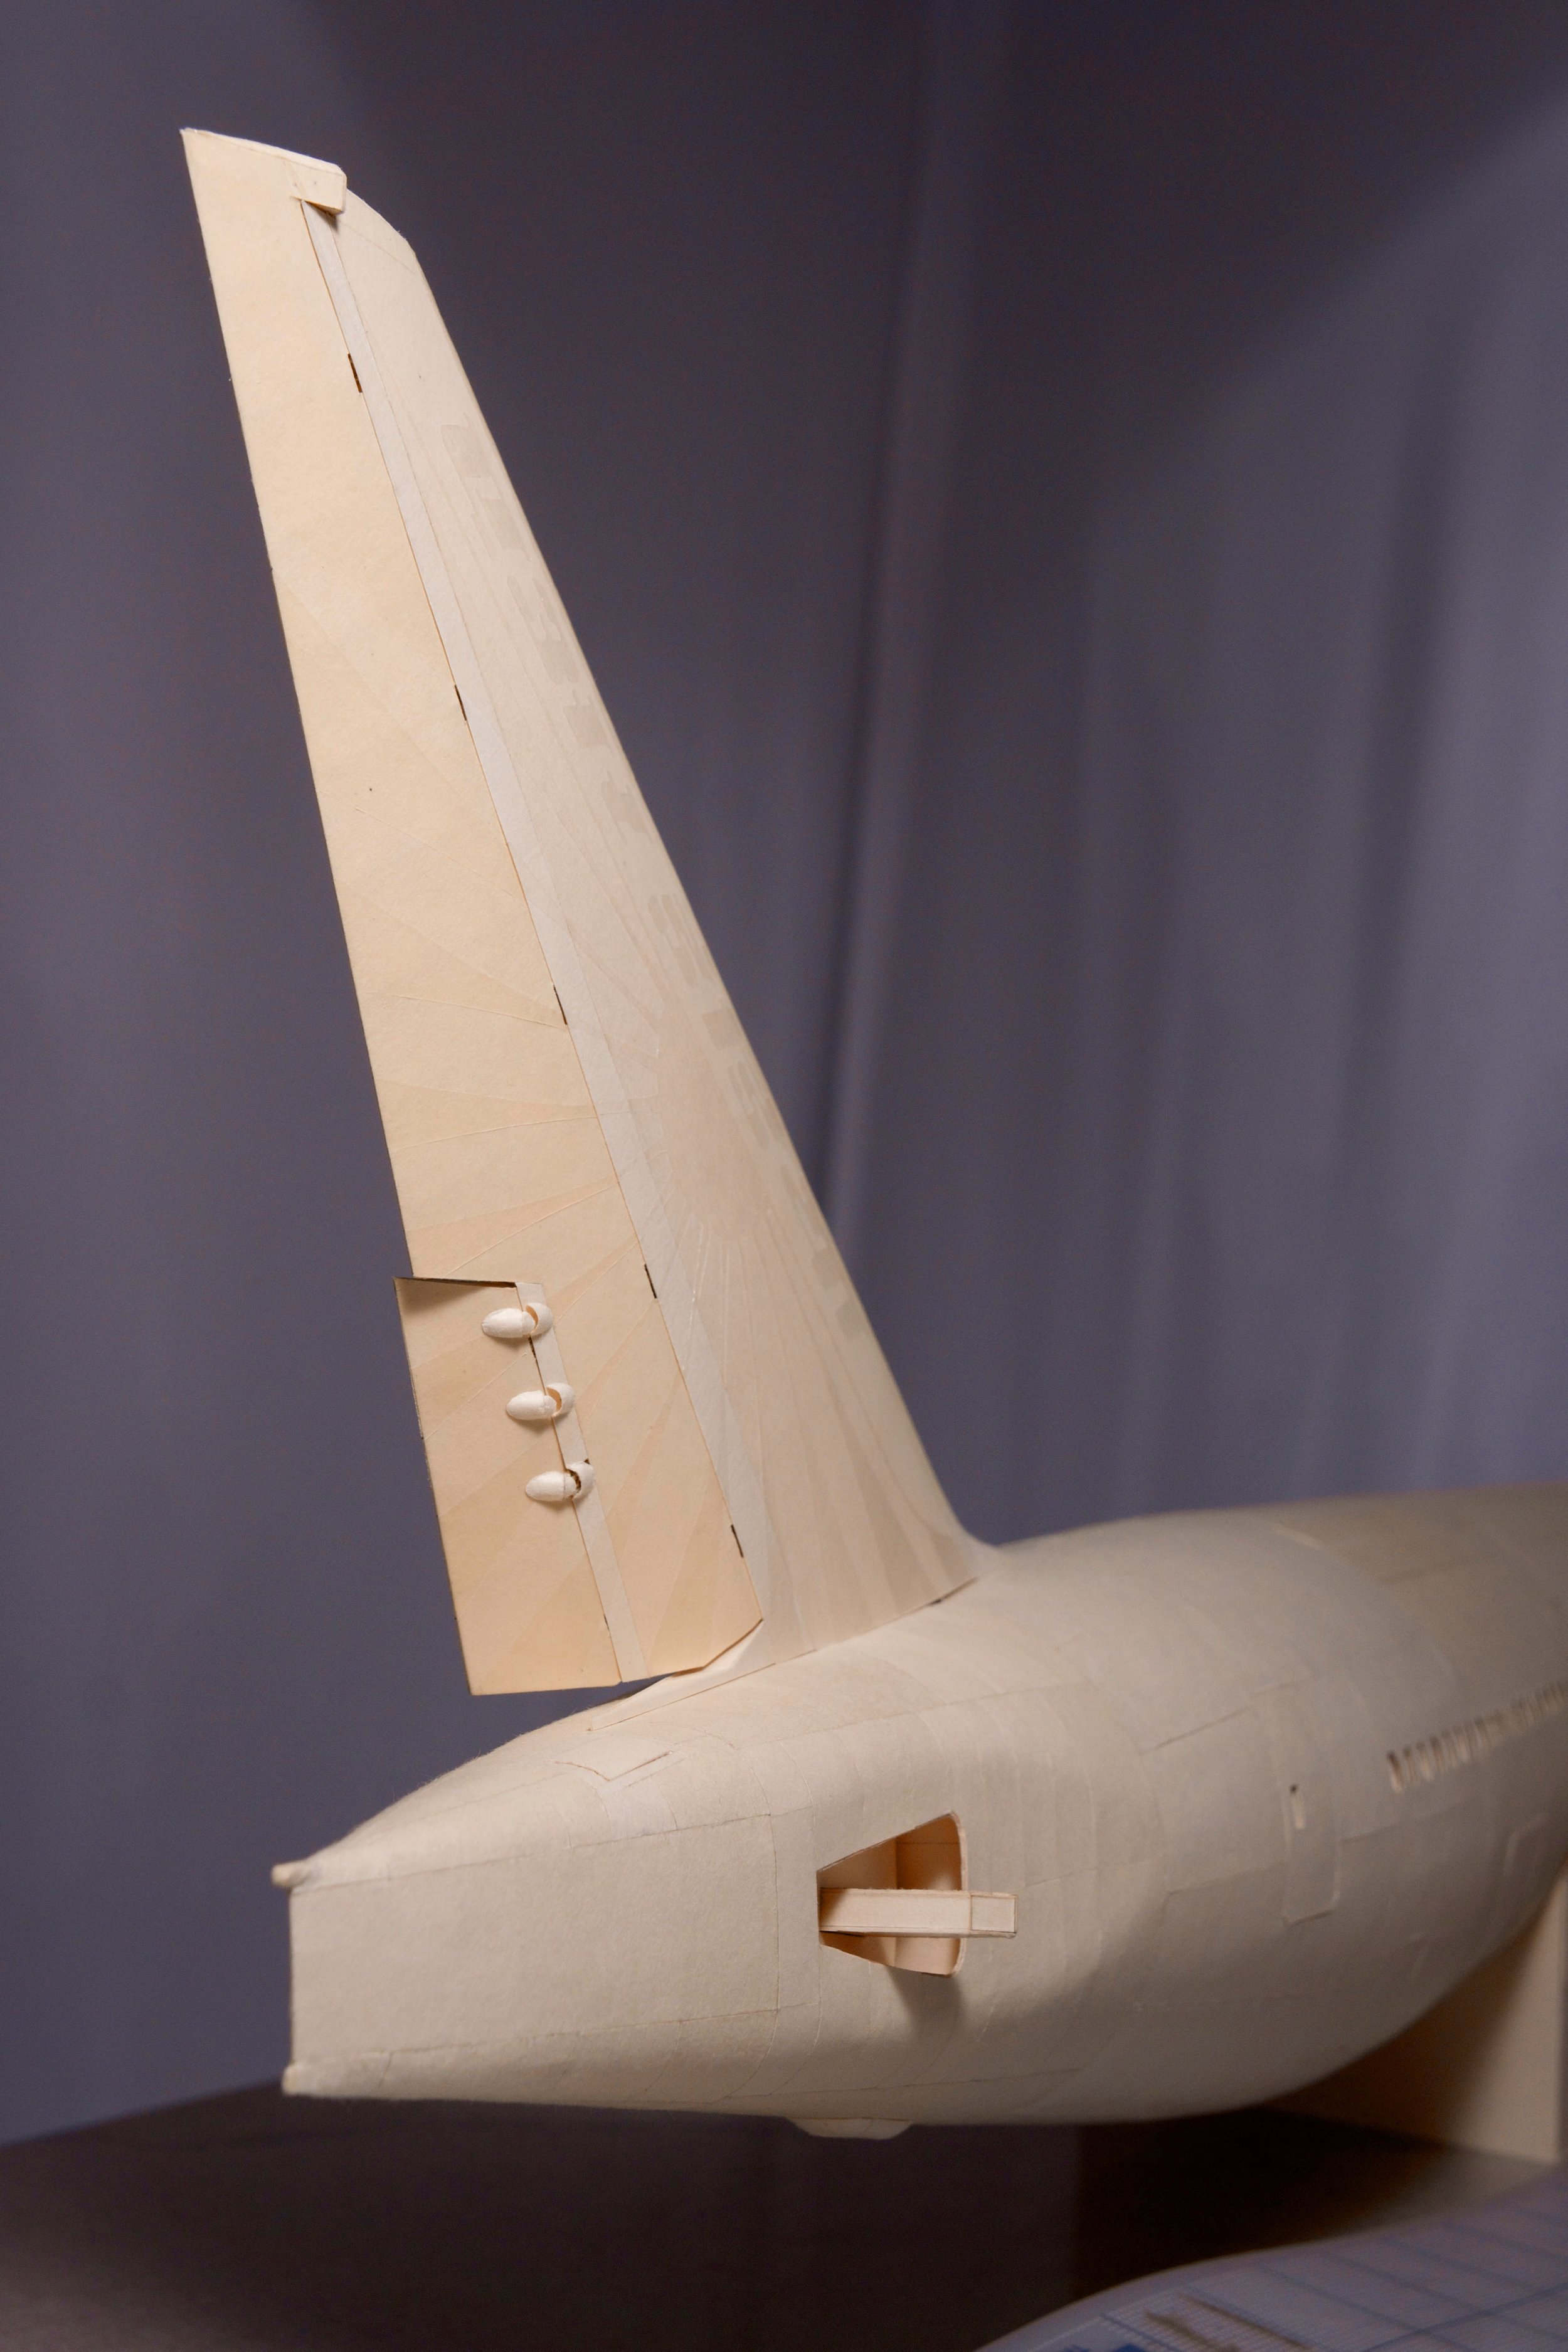 The tail fin showing full extension to one side